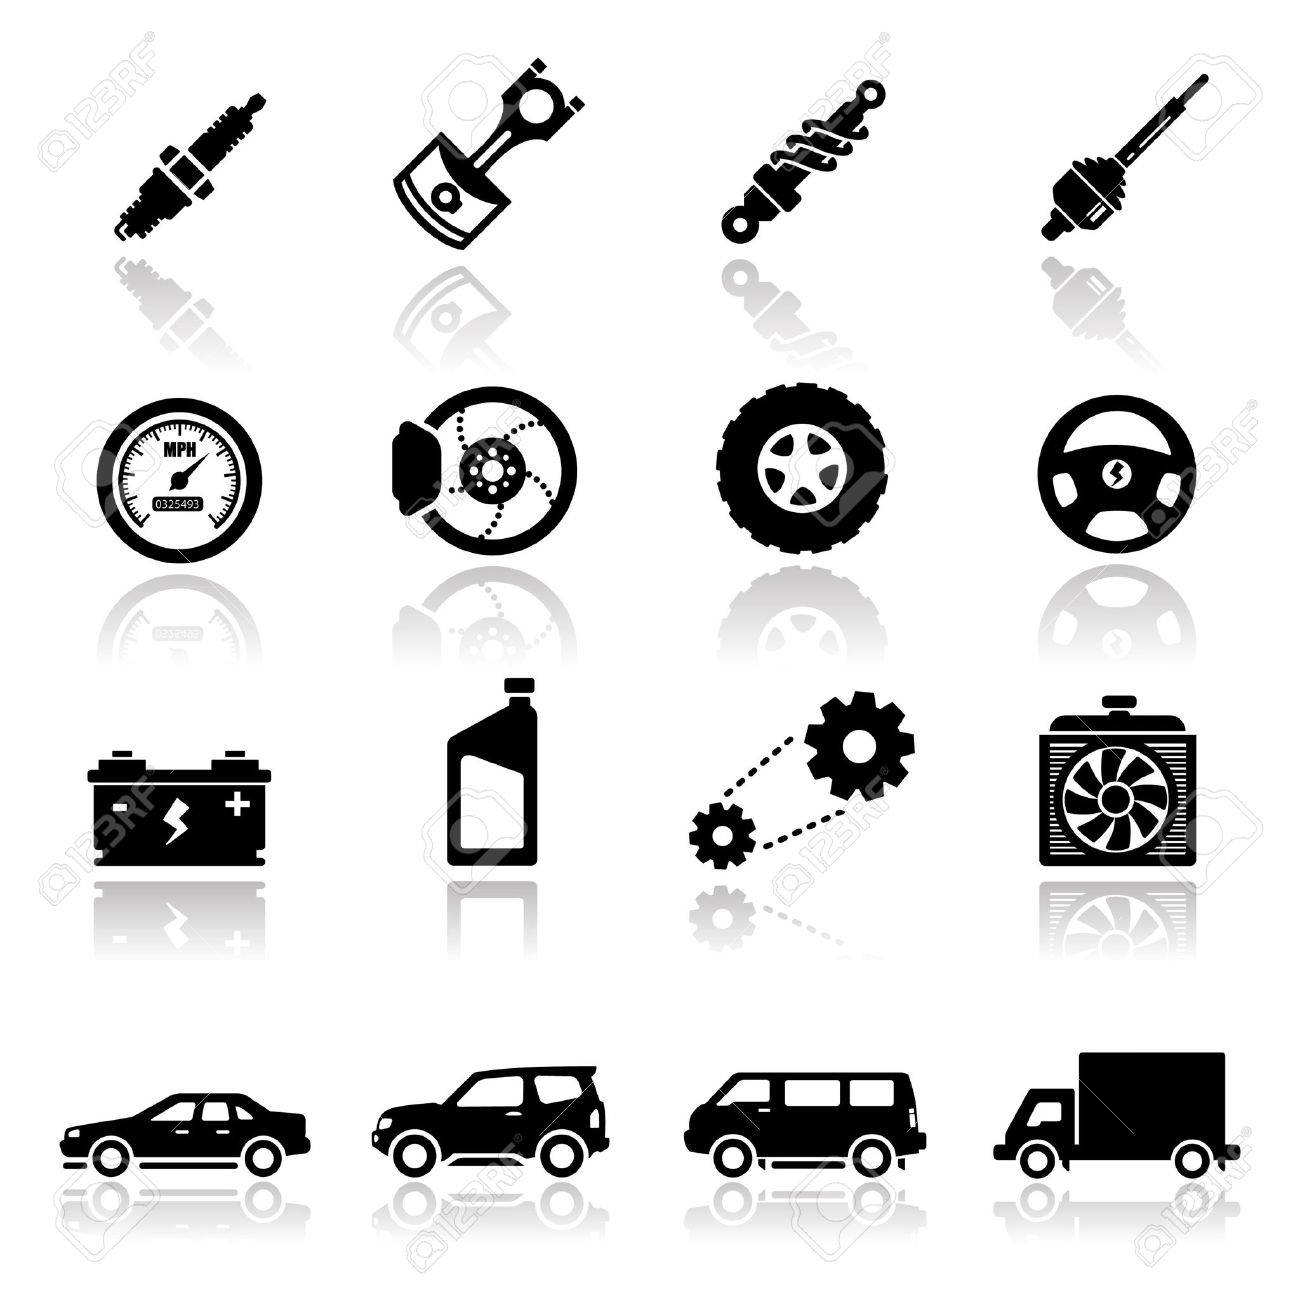 Free car parts clipart 9 » Clipart Station.